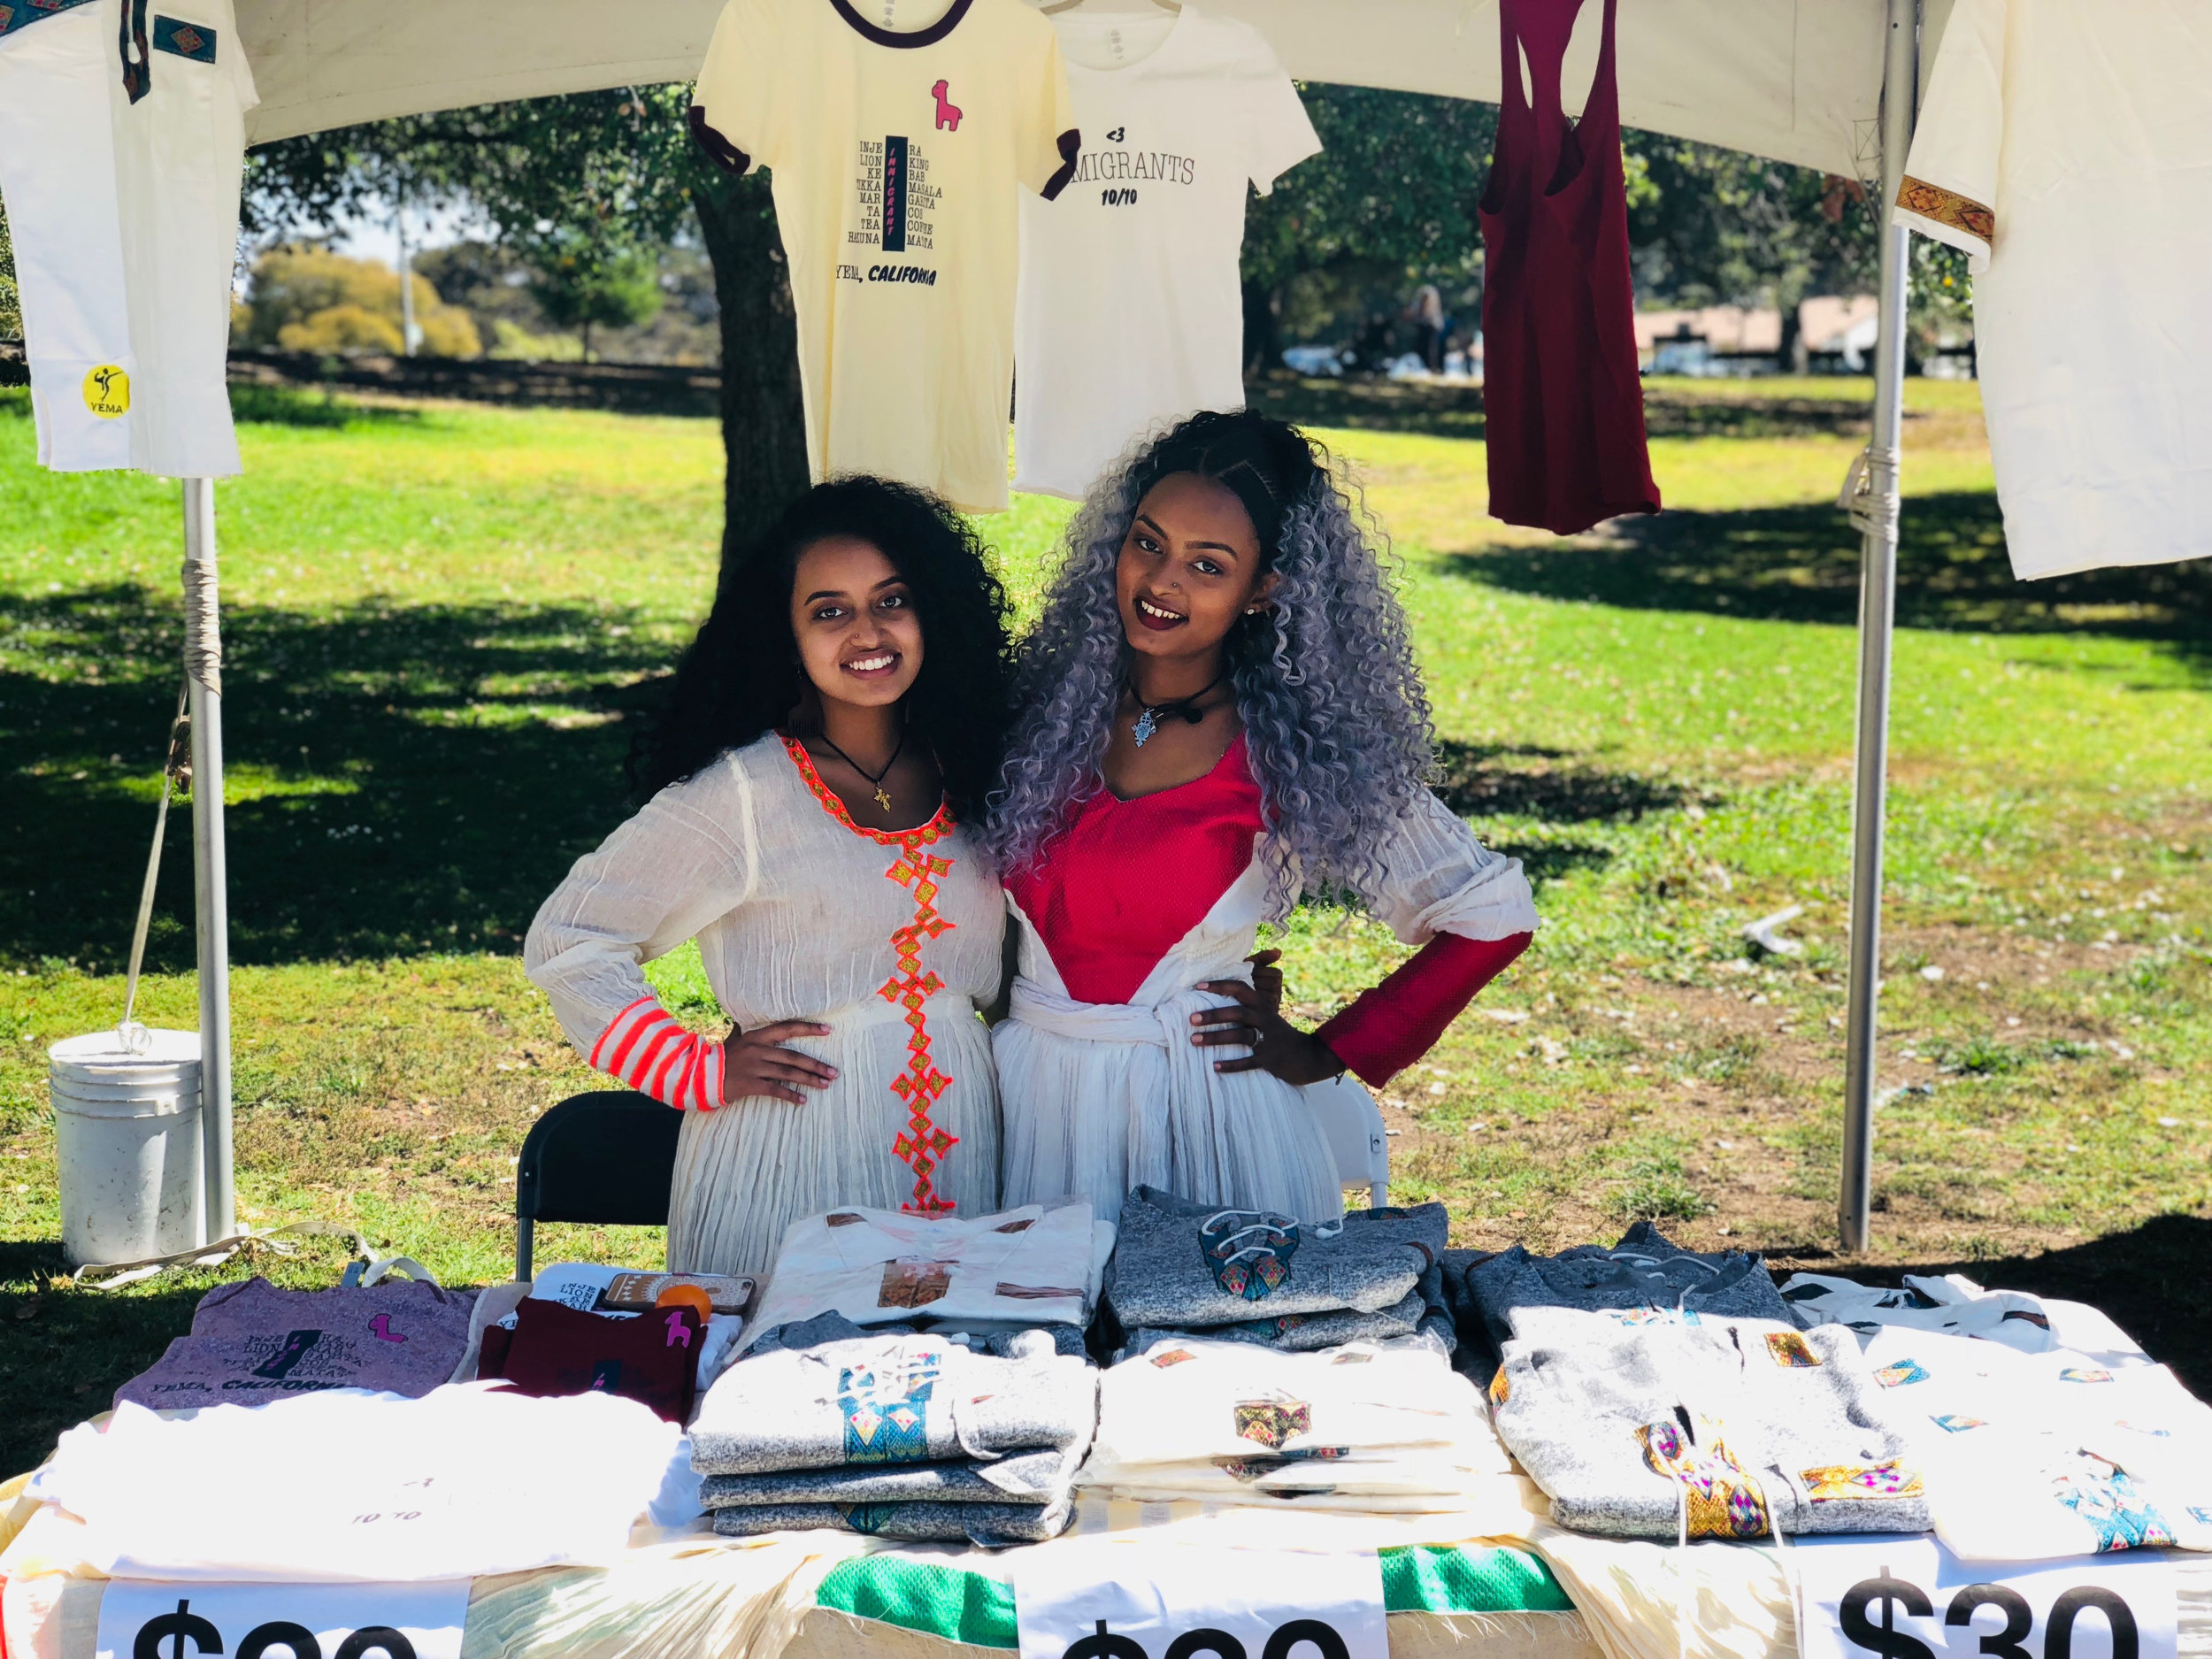 Oakland, California - Our booth at the Ethiopia New Year celebration.